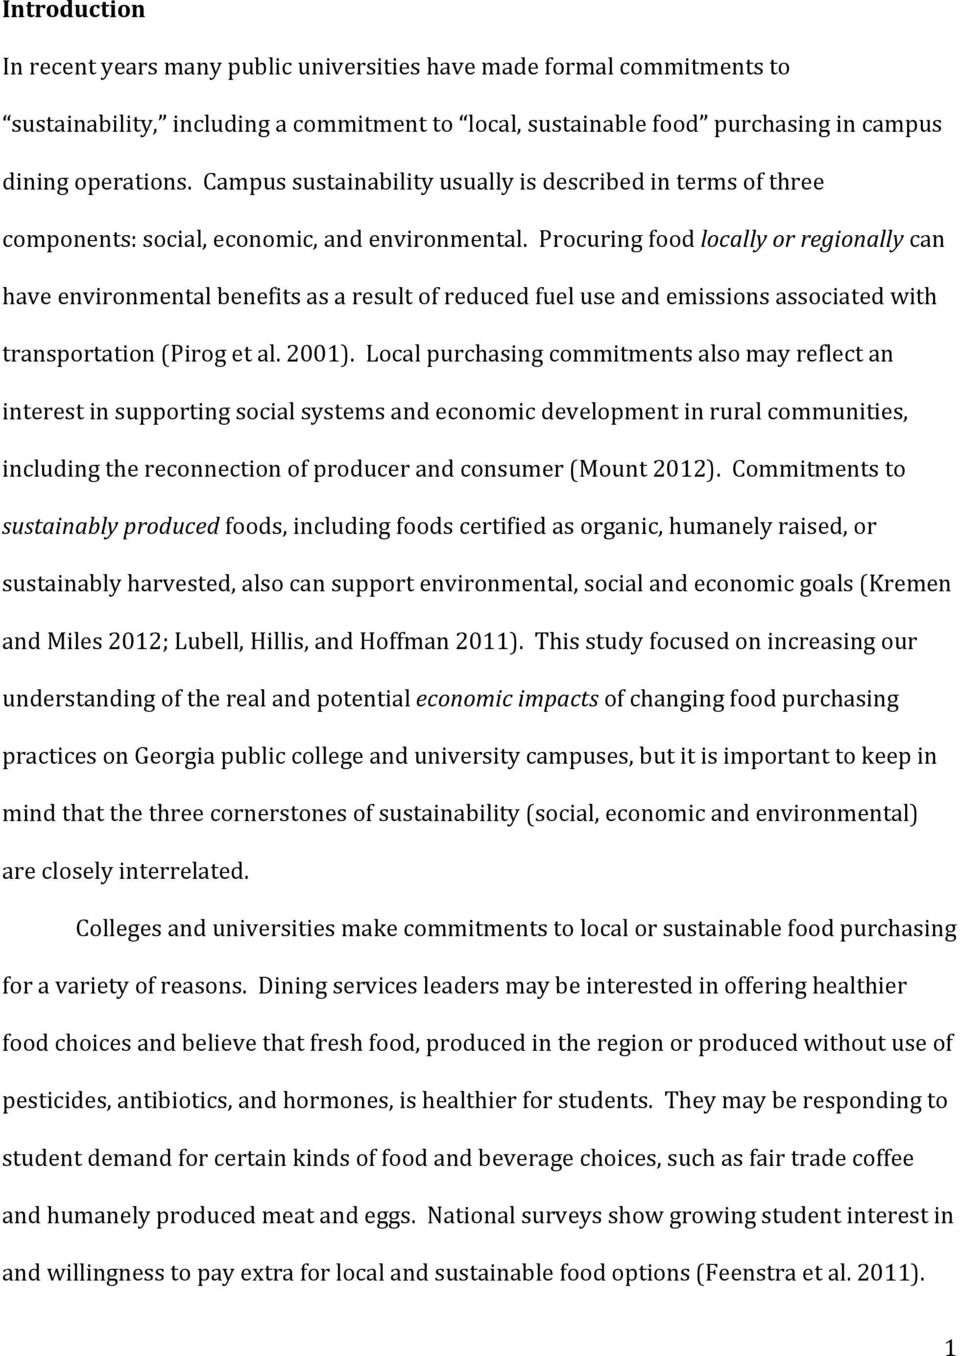 Procuring food locally or regionally can have environmental benefits as a result of reduced fuel use and emissions associated with transportation (Pirog et al. 2001).